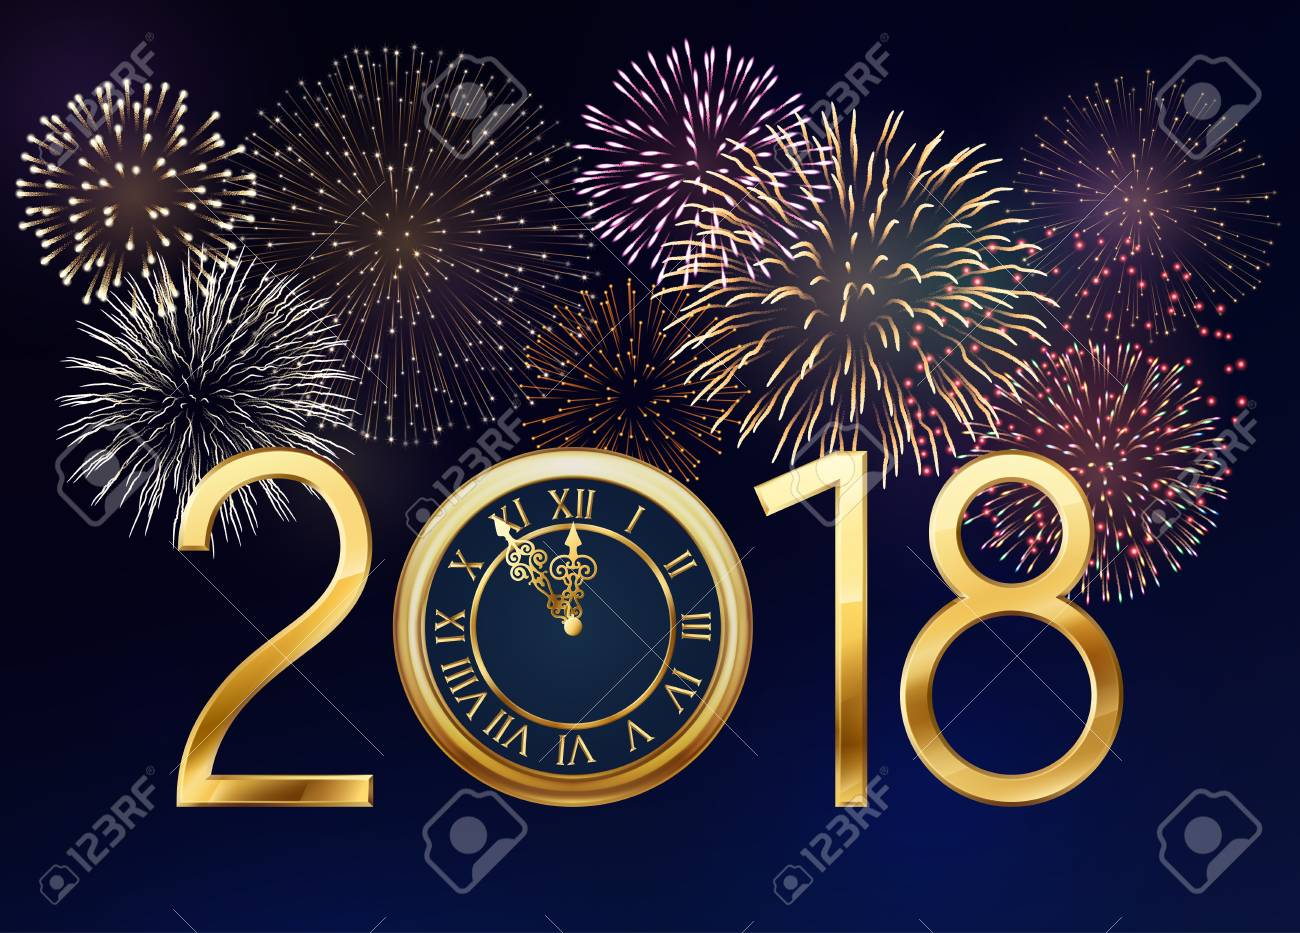 2018 new year greeting card with golden clock and sparkles and 2018 new year greeting card with golden clock and sparkles and fireworks eps 10 m4hsunfo Gallery